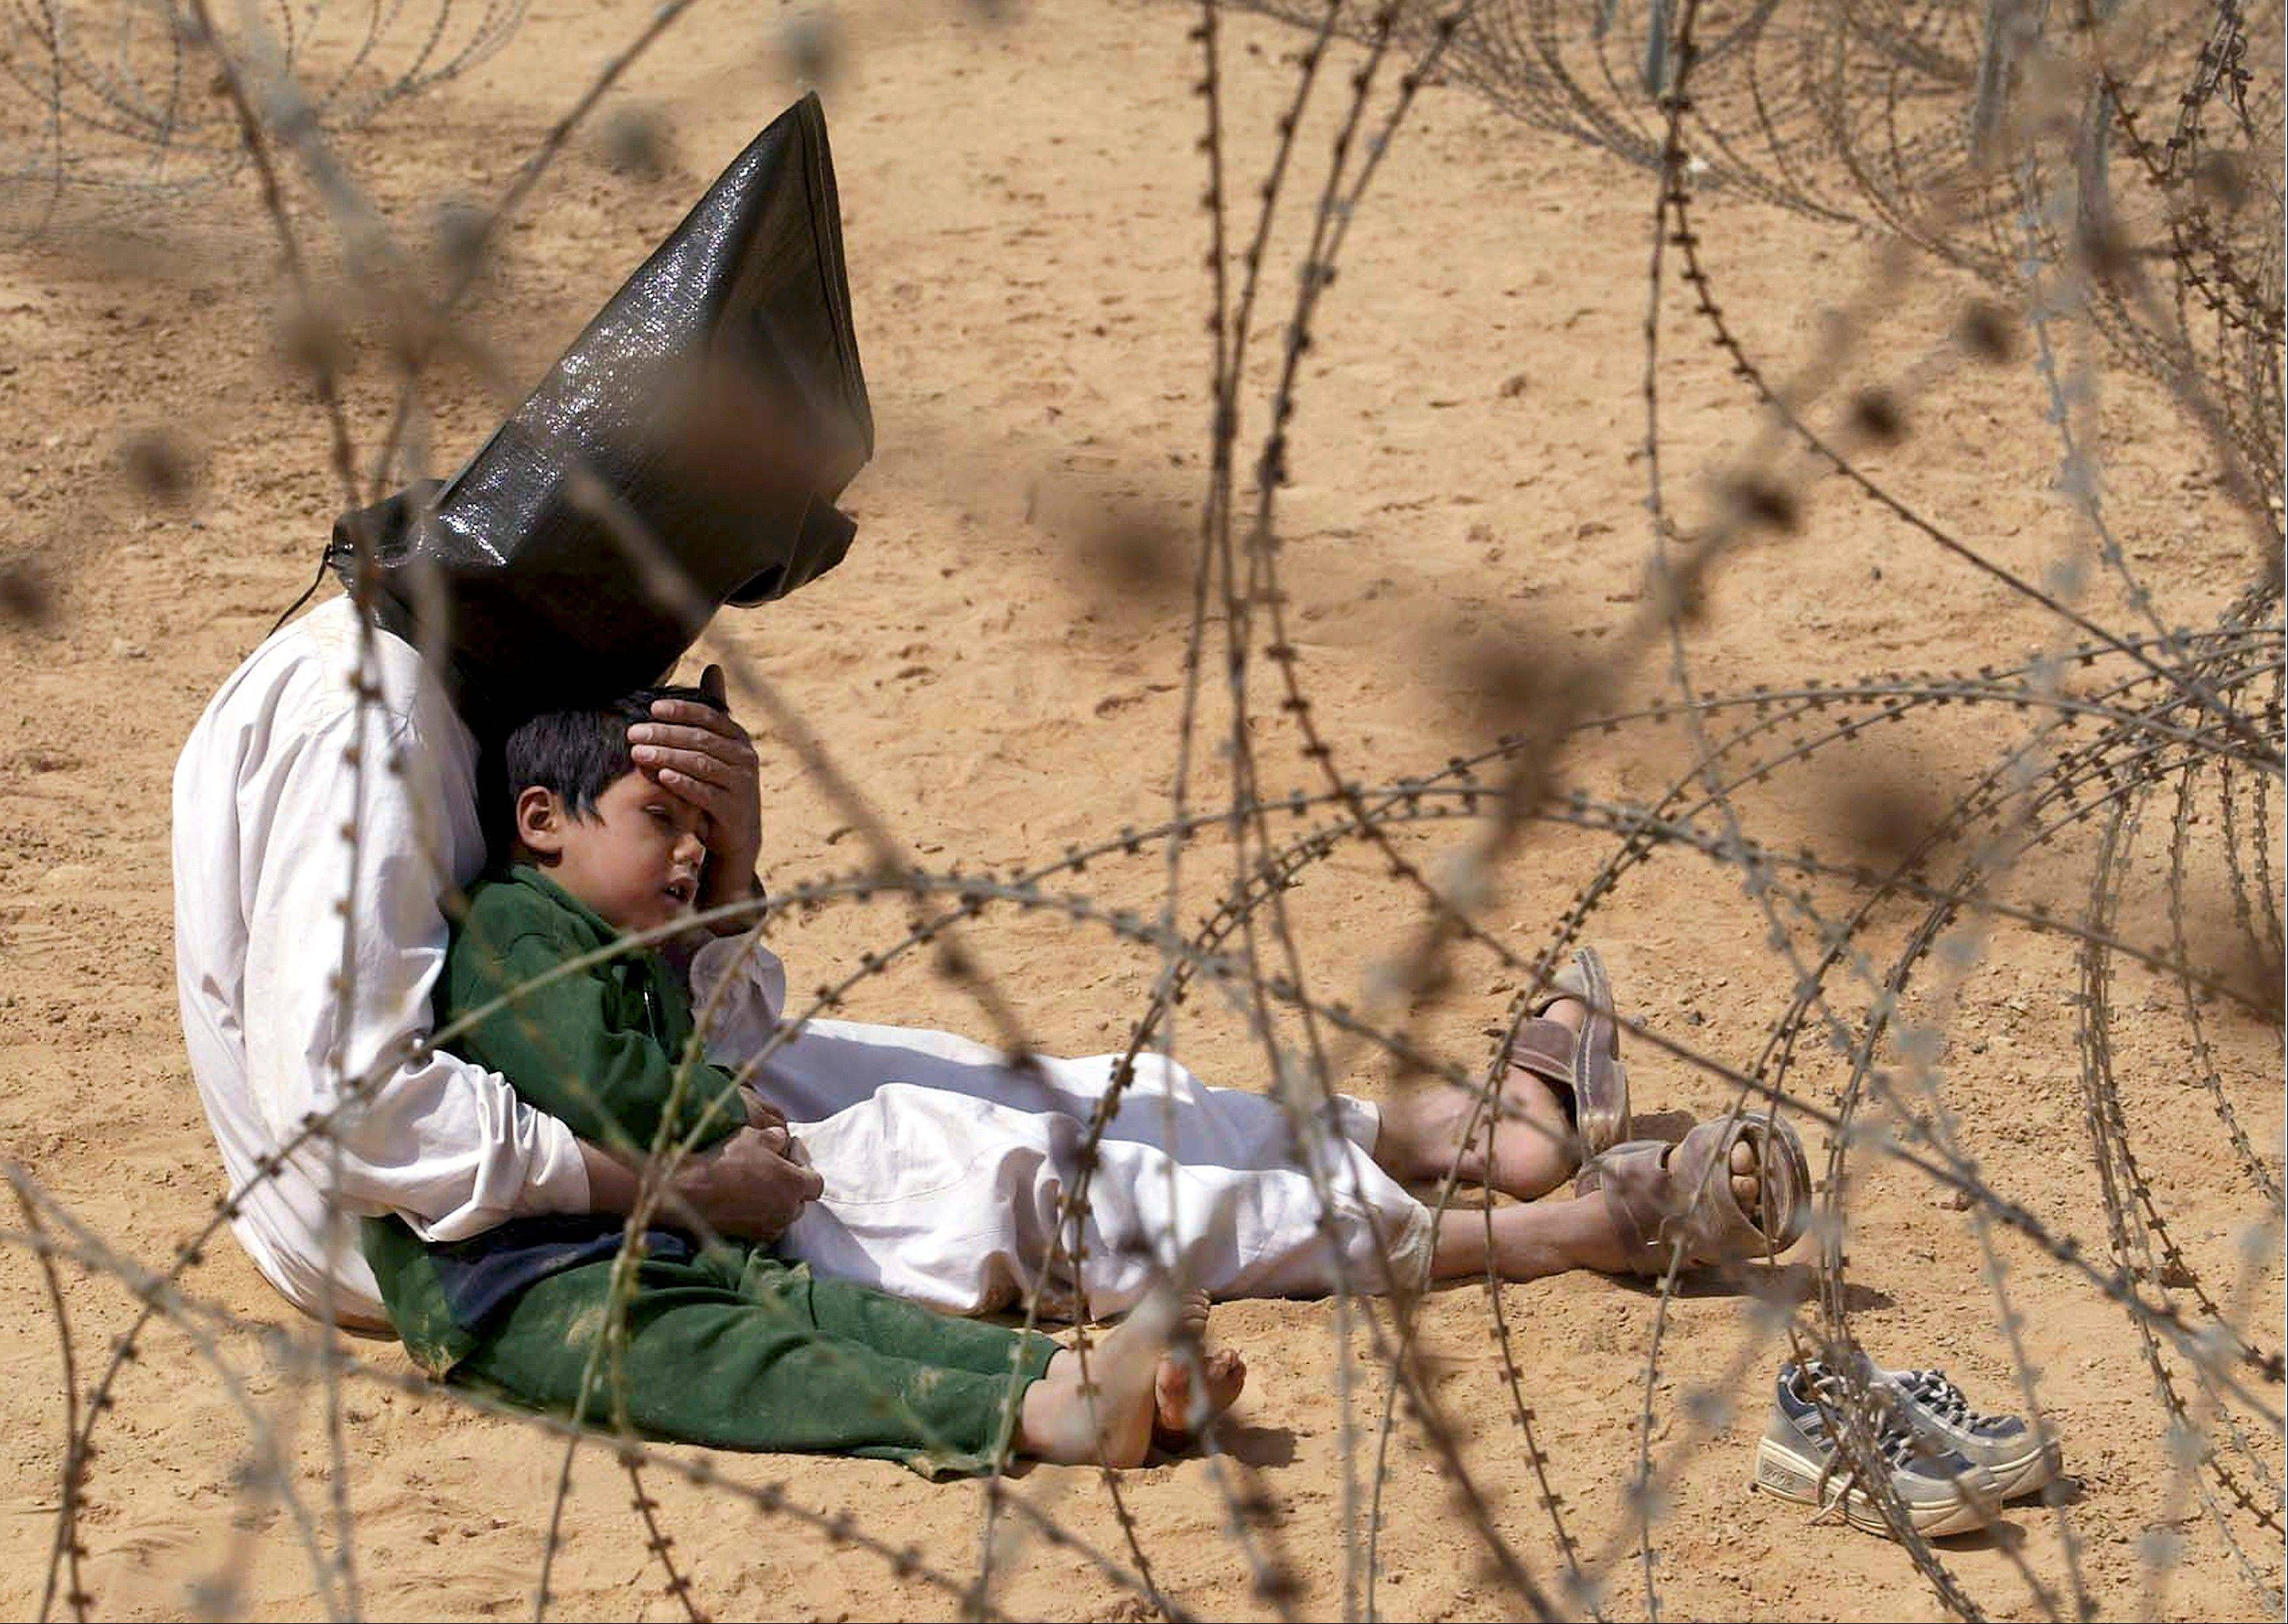 FILE - An Iraqi prisoner of war comforts his 4-year-old son at a regrouping center for POWs captured by the U.S. Army 101st Airborne Division near Najaf, Iraq on March 31, 2003.